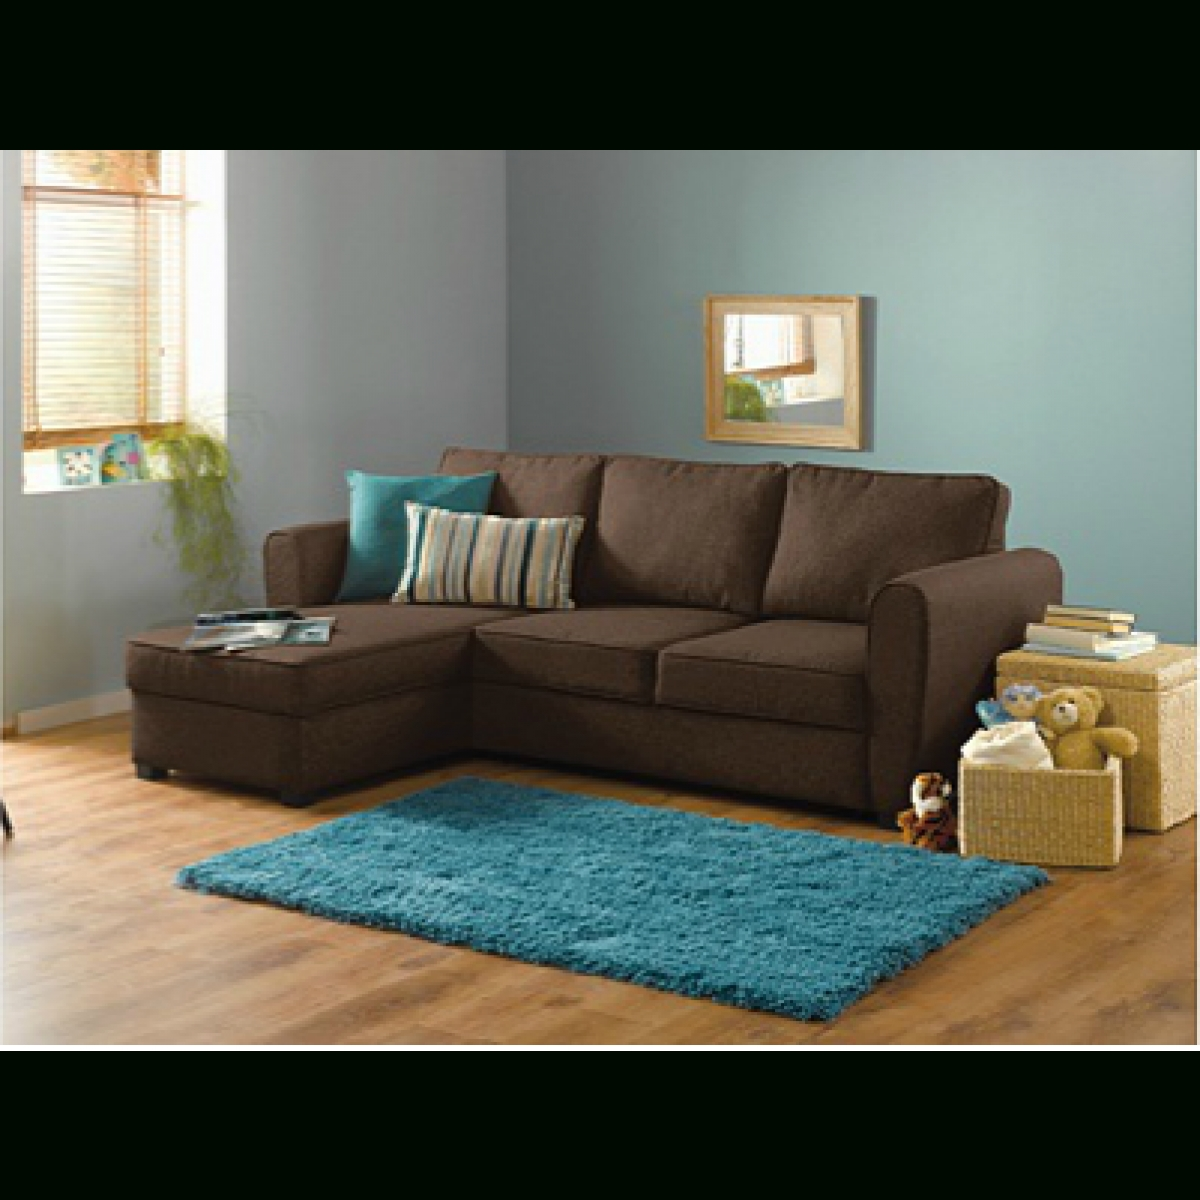 Fabric Corner Sofas Throughout Most Recent Home New Siena Fabric Corner Sofa Bed W/ Storage – Chocolate (View 5 of 20)